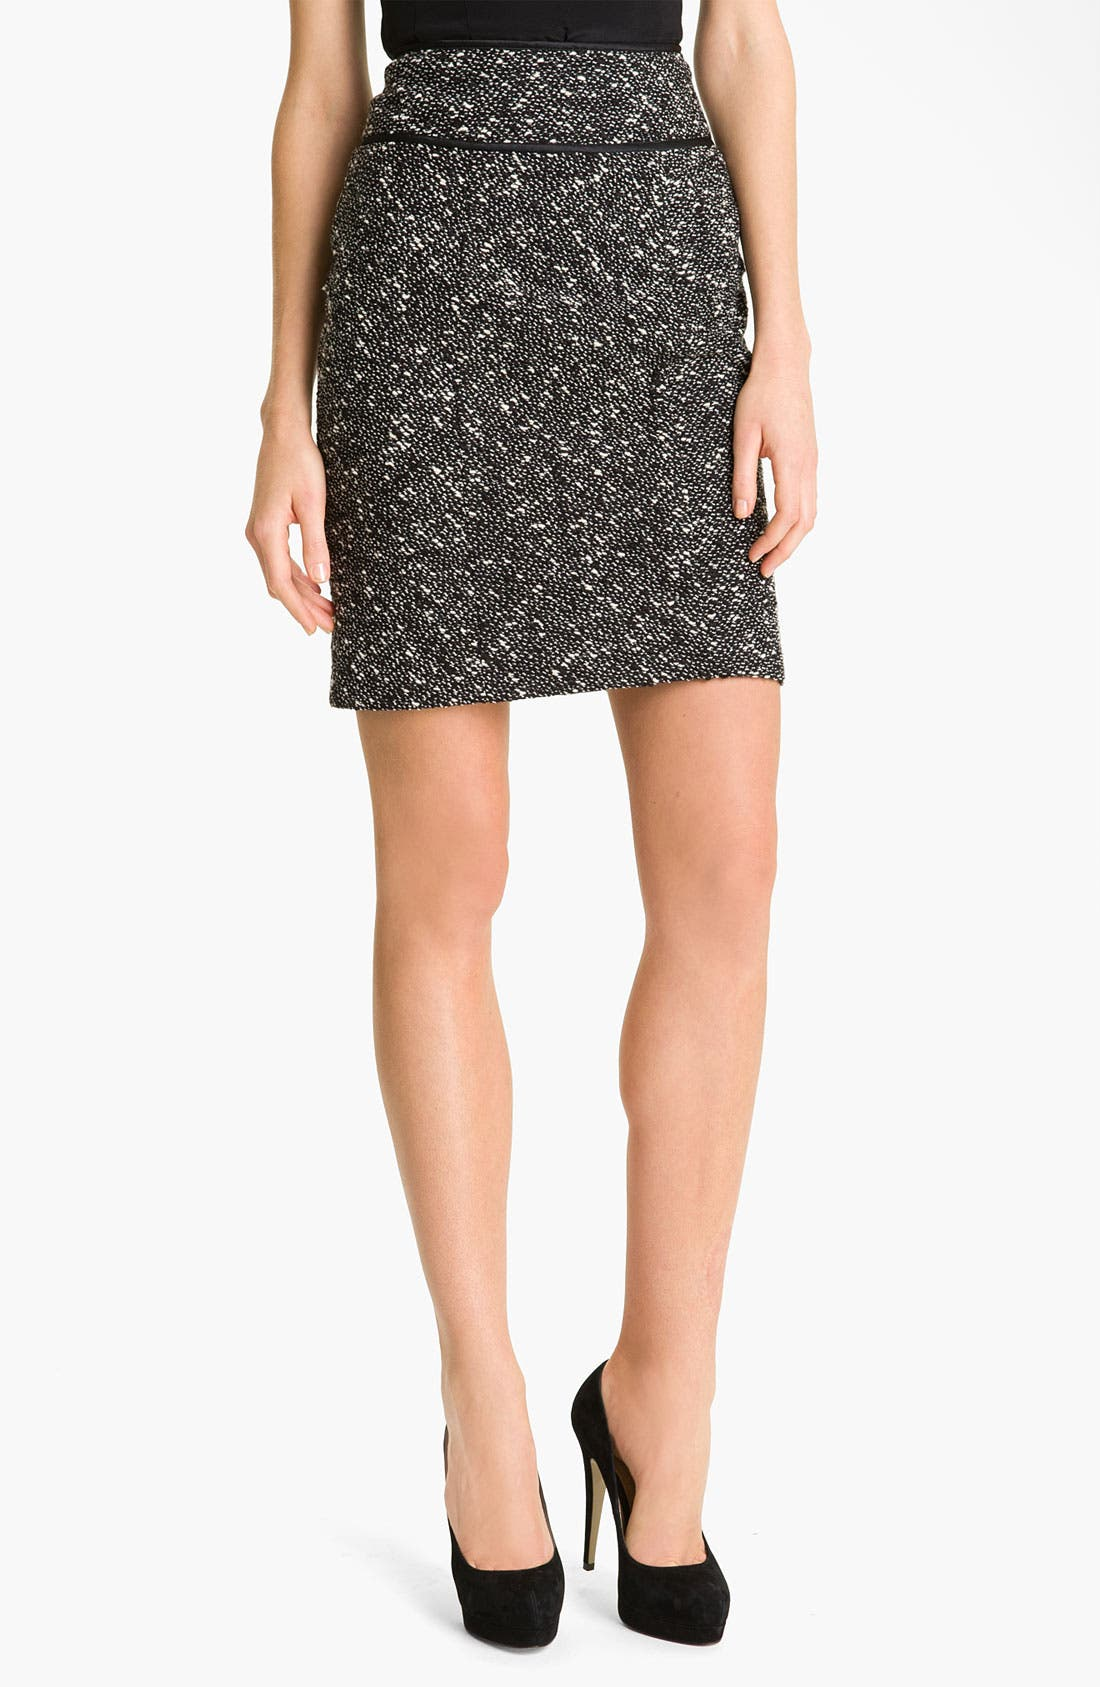 Alternate Image 1 Selected - Nanette Lepore 'Estate' Pencil Skirt